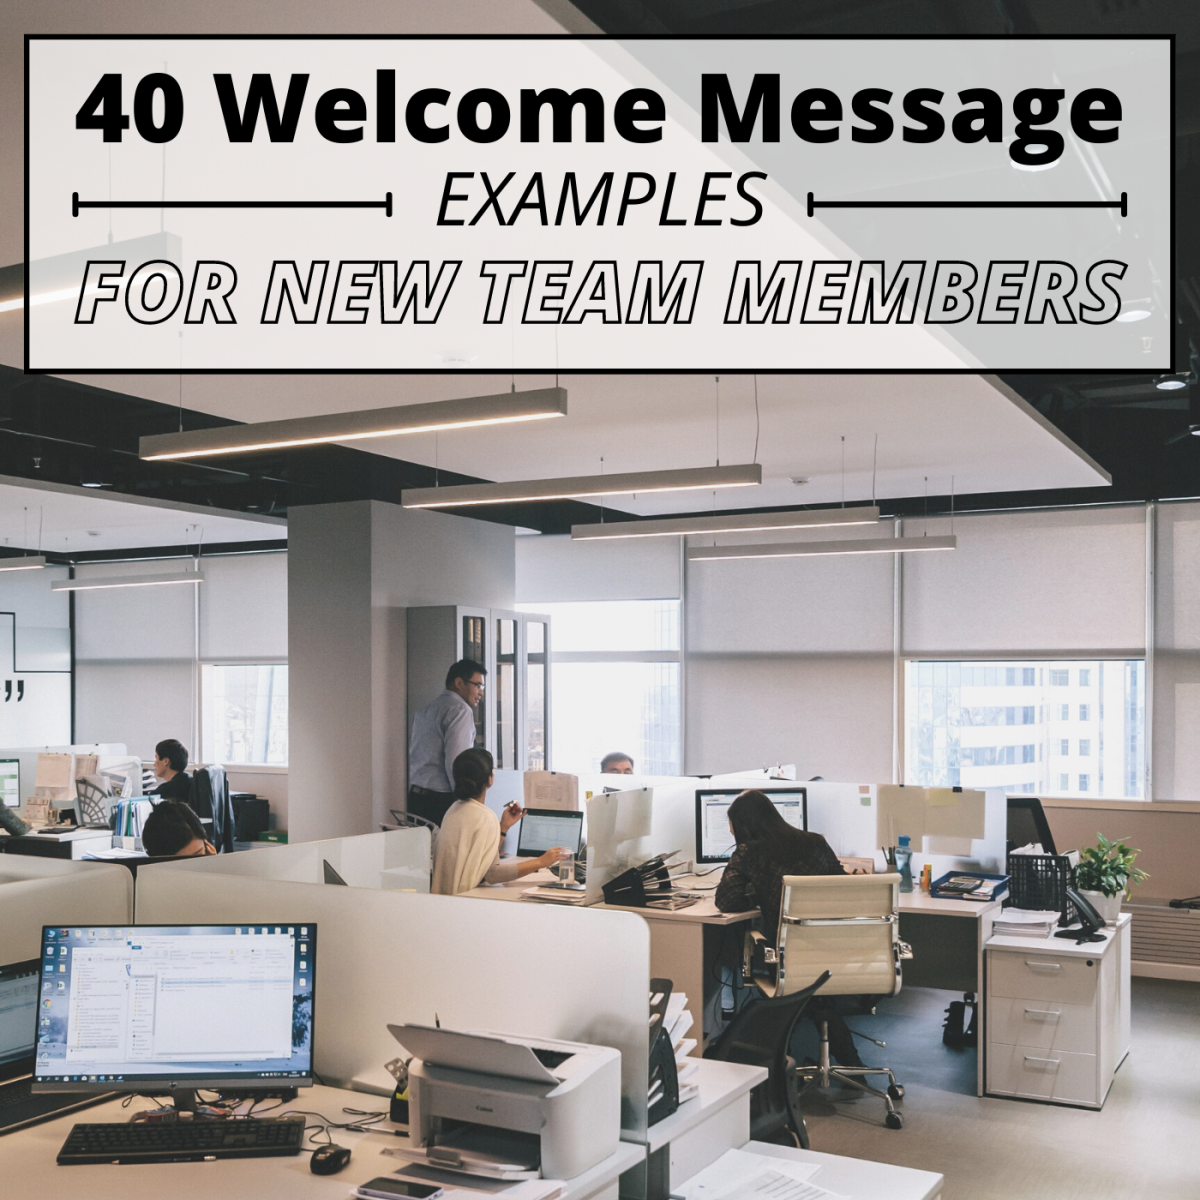 Greeting a new employee with a cheerful onboarding note is a great way to make them feel comfortable and excited about their new role.